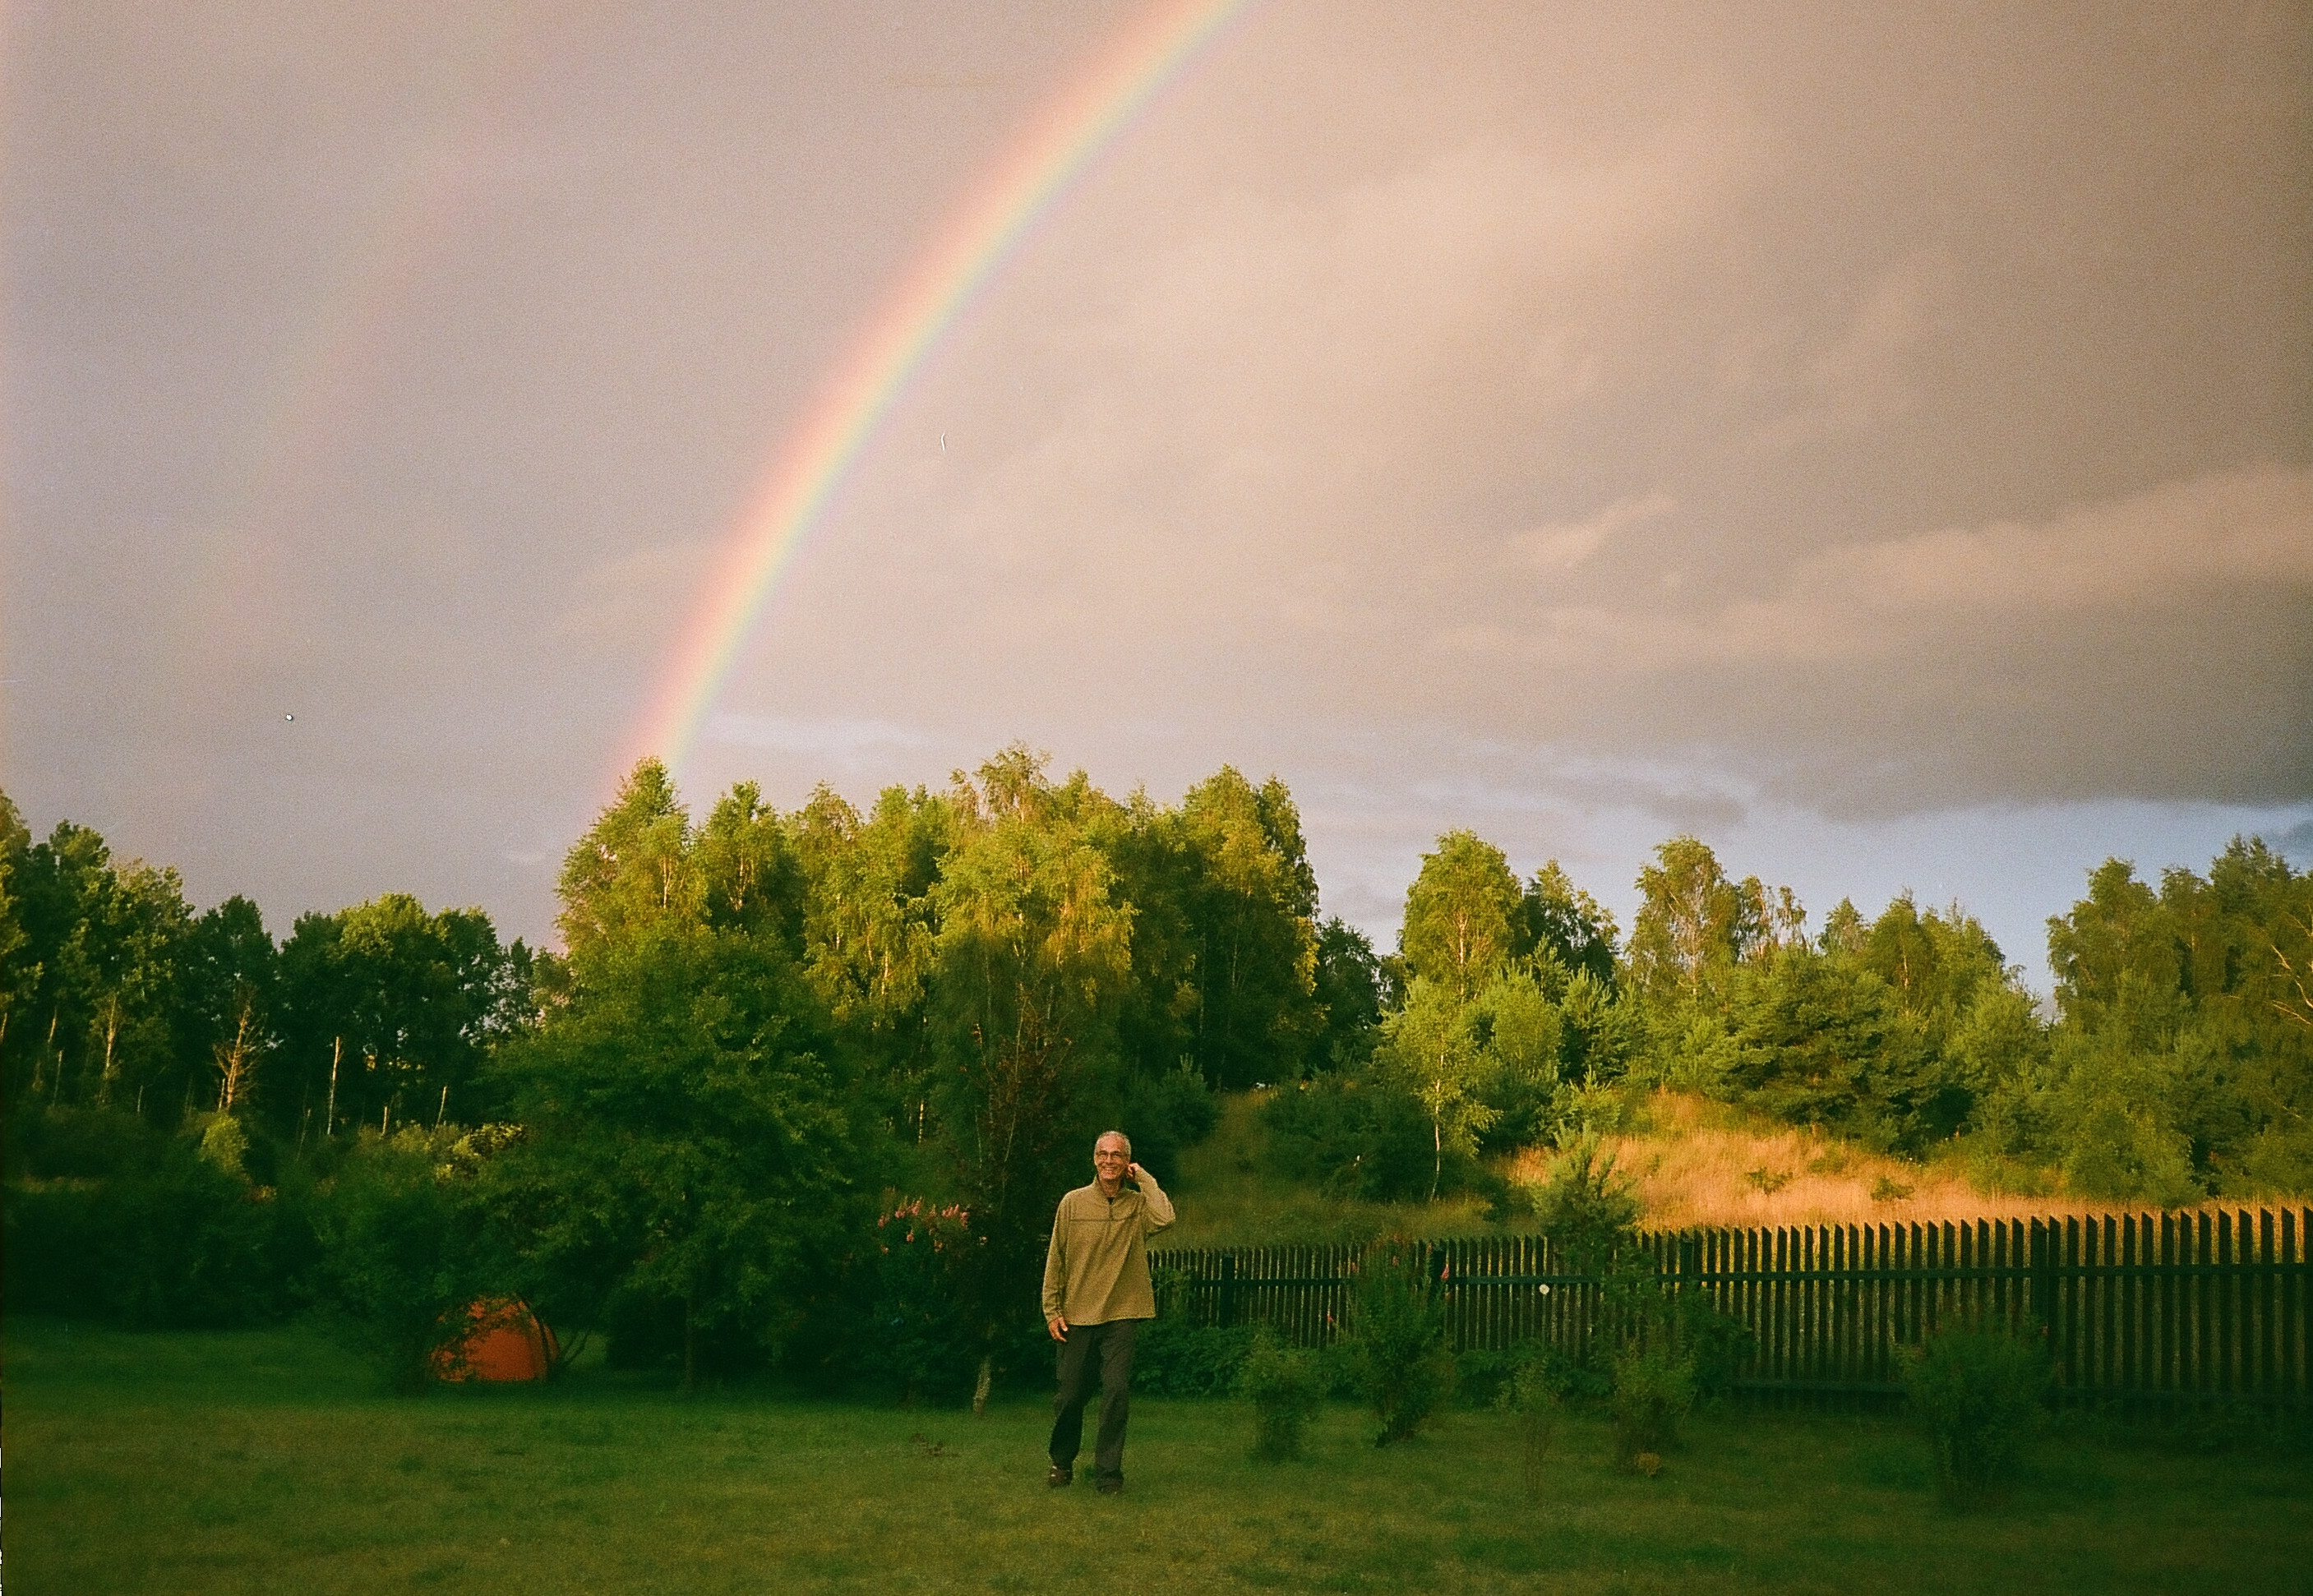 Mike Vargas emerging from rainbow at Burdag dance retreat, northern Poland, July 2016 | photo © NSS